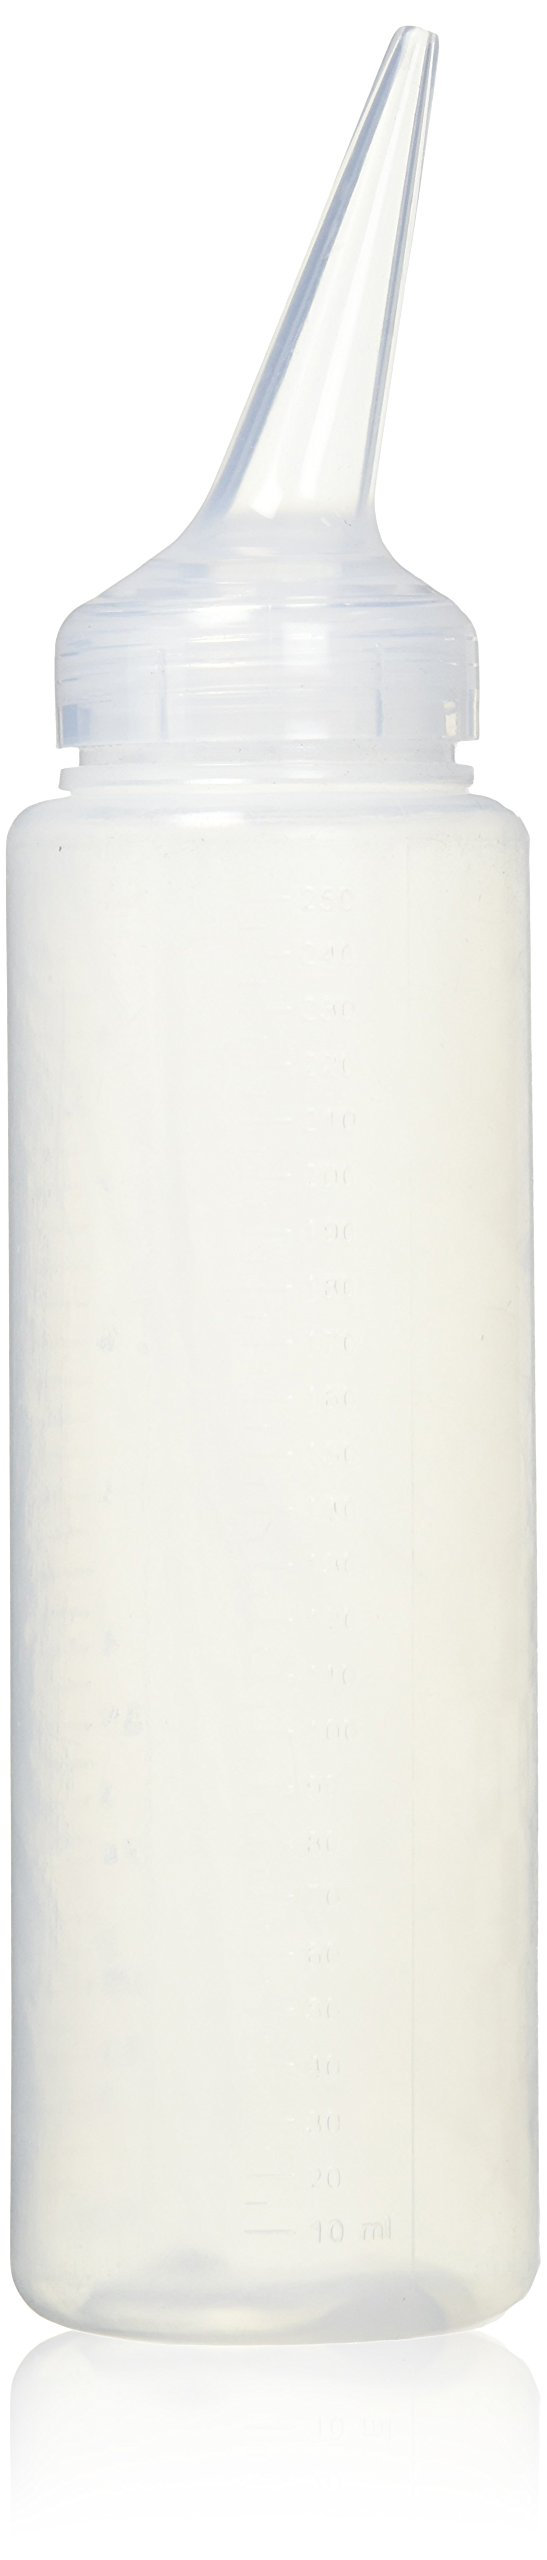 Soft 'N Style Applicator Bottle with Angle Tip 8.5 oz.